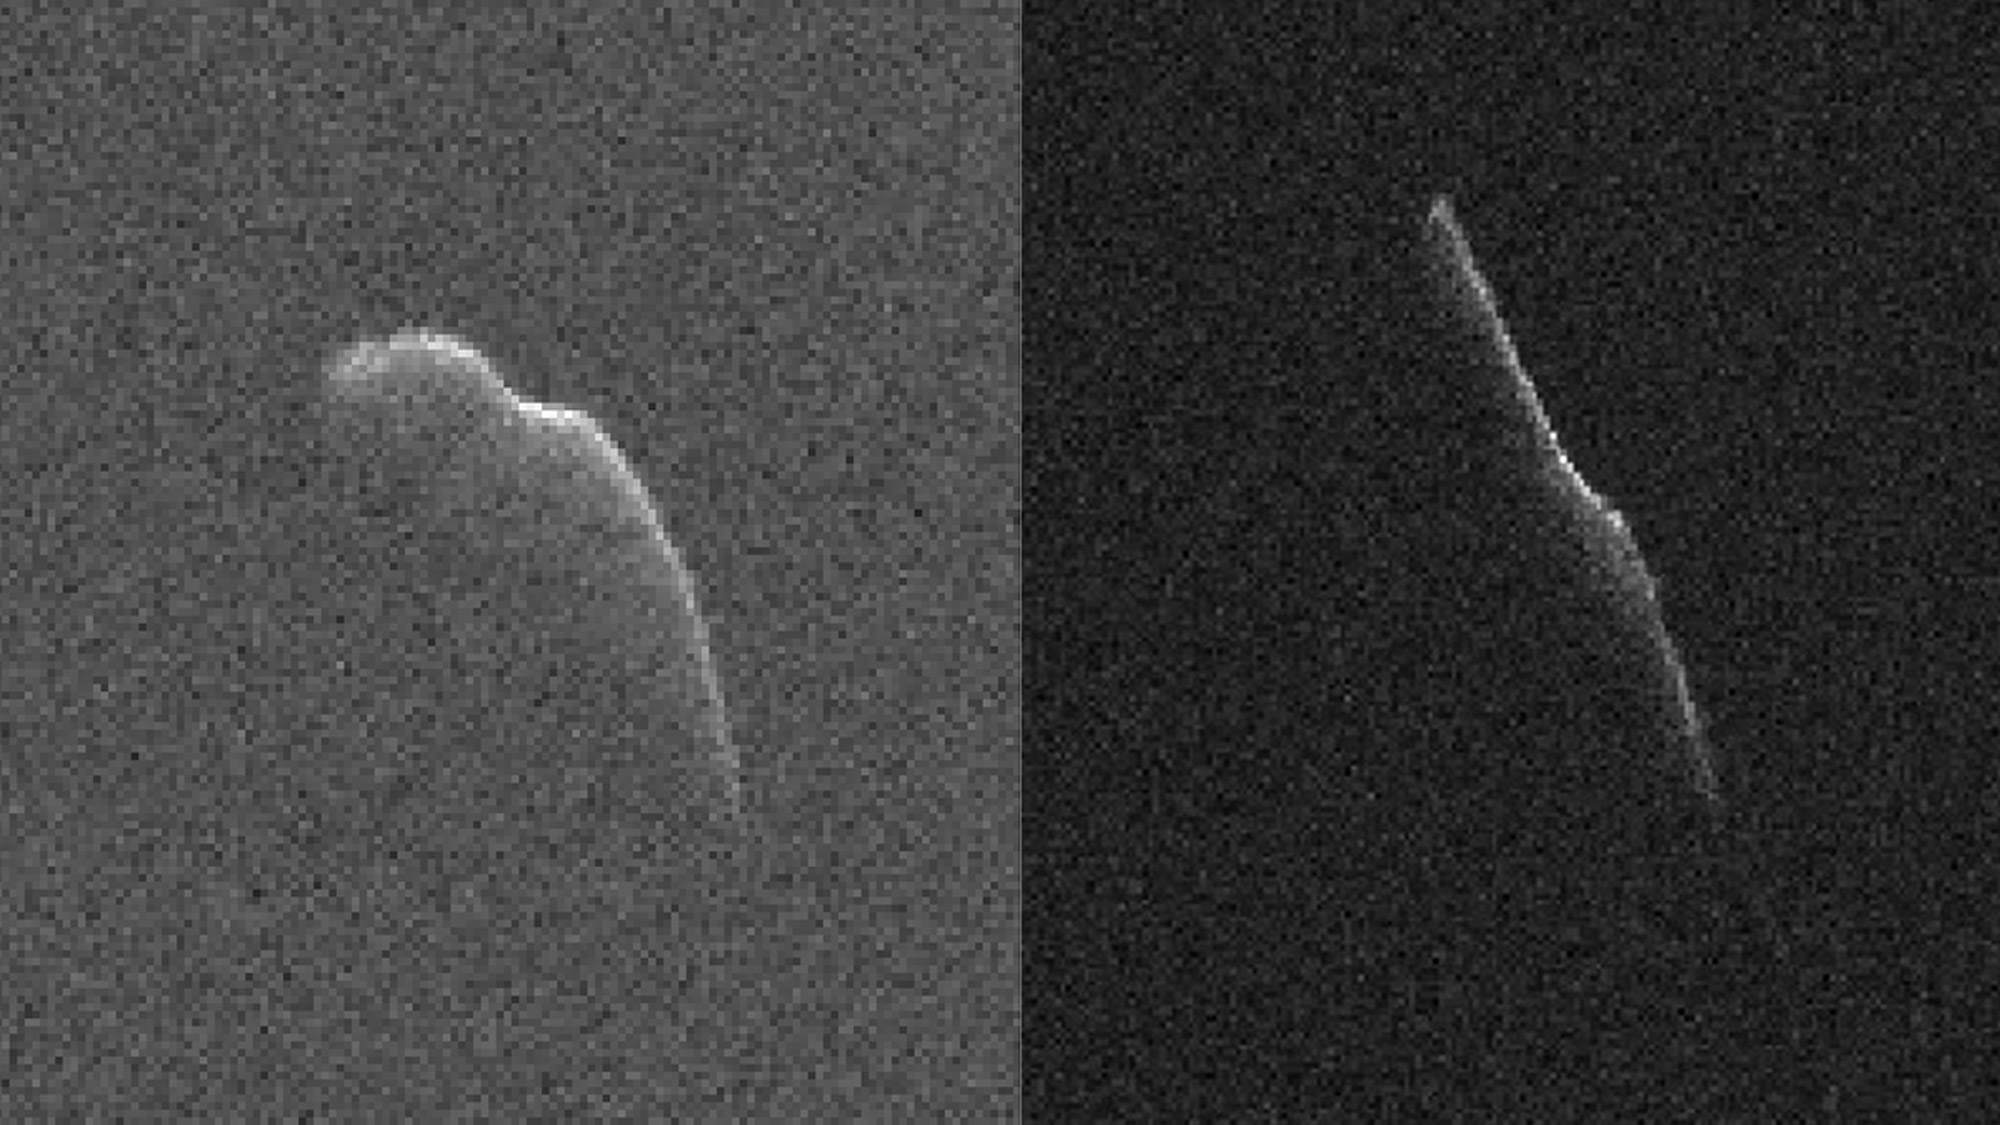 An asteroid will safely fly past Earth at a distance of 6.8 million miles on Dec. 24.